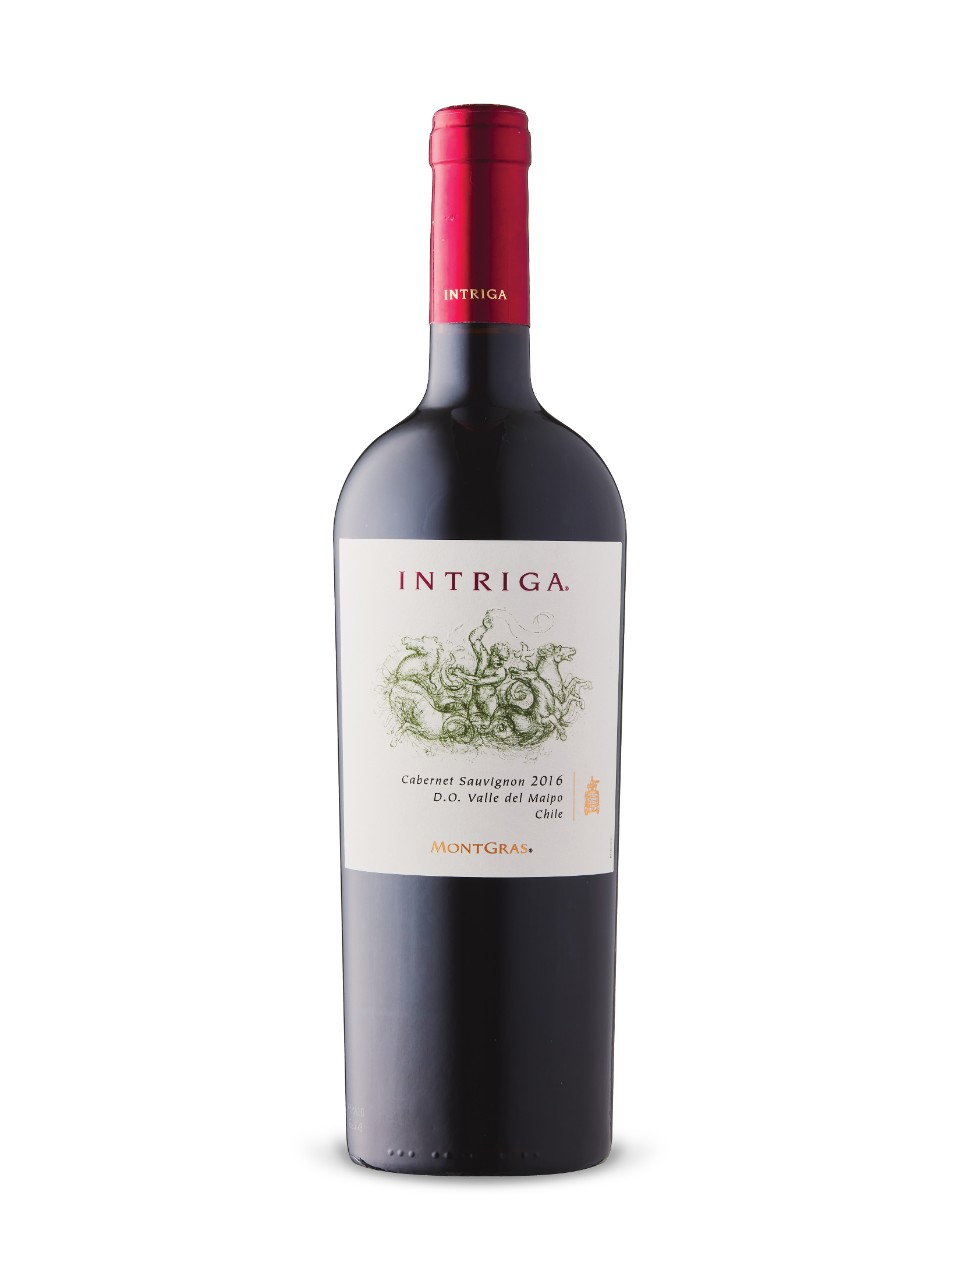 Montgras Intriga Cabernet Sauvignon 2016 from LCBO